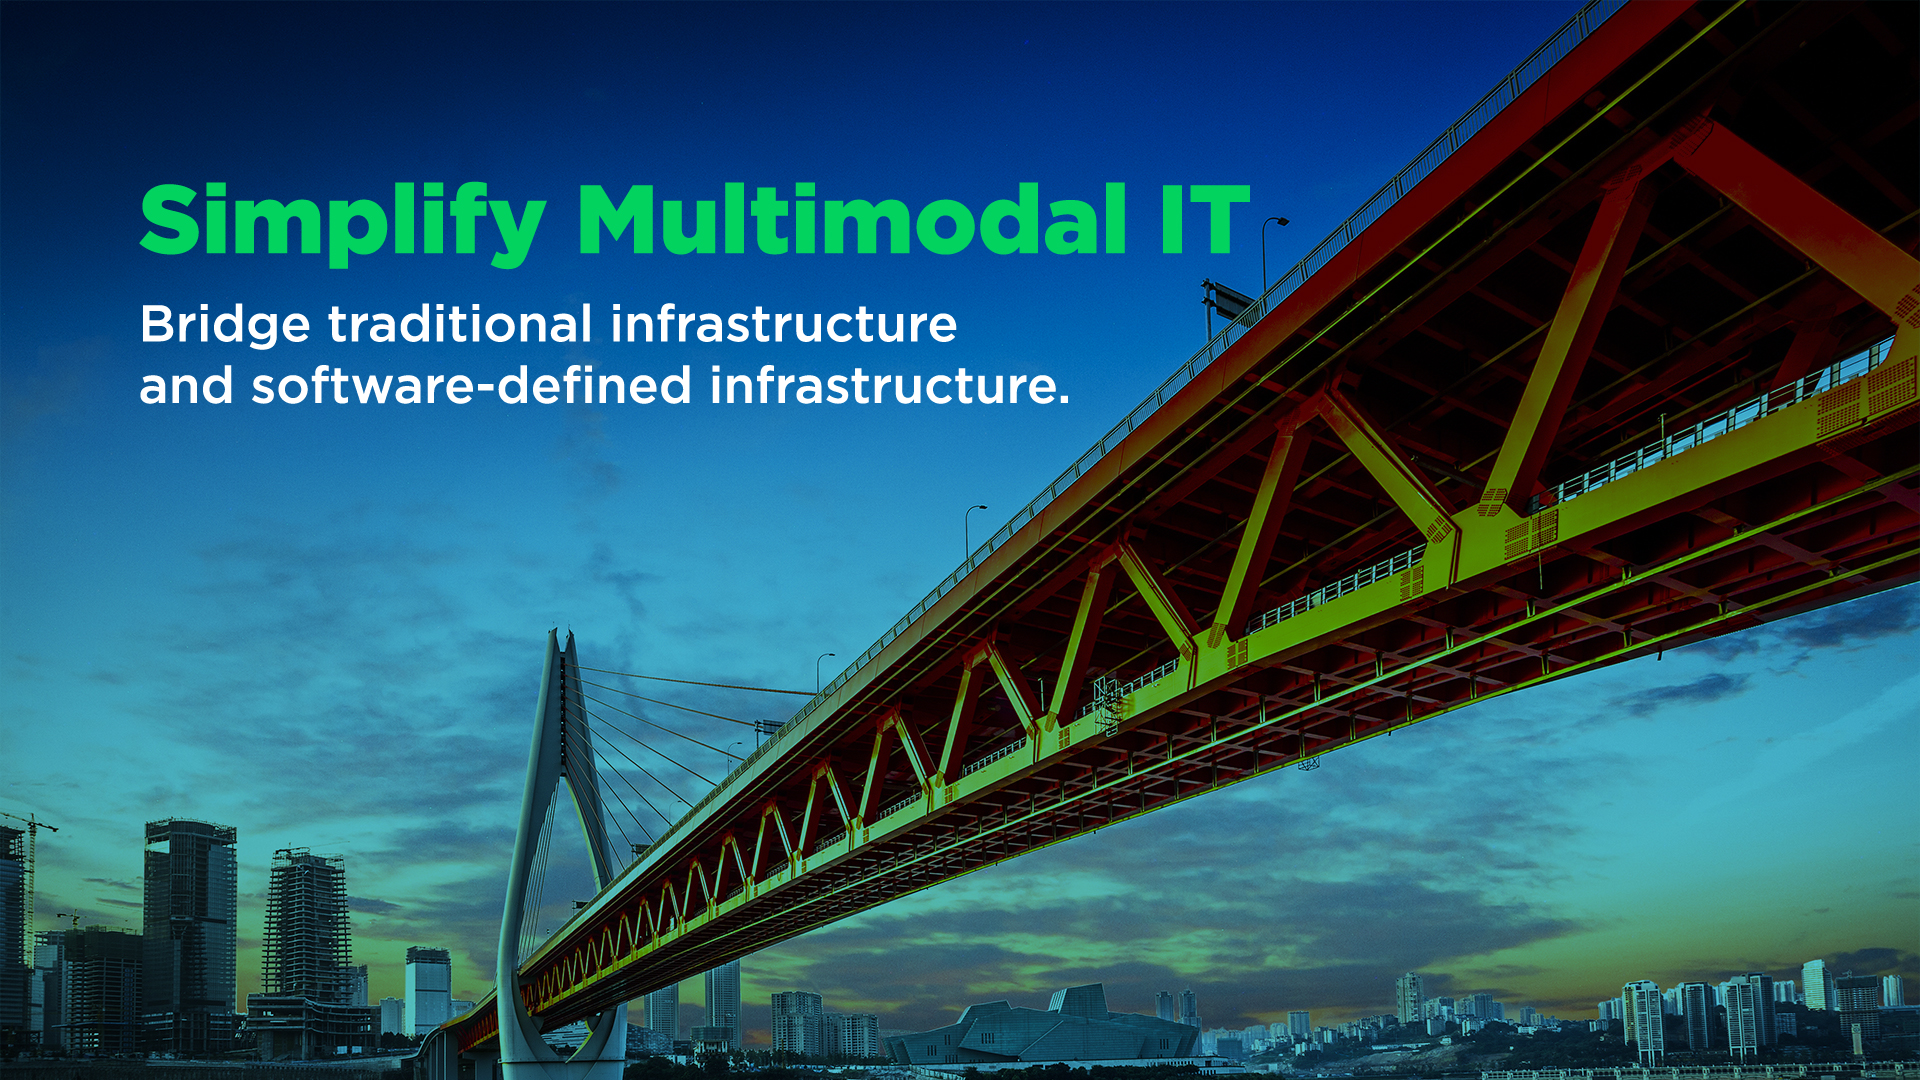 Simplify Multimodal IT